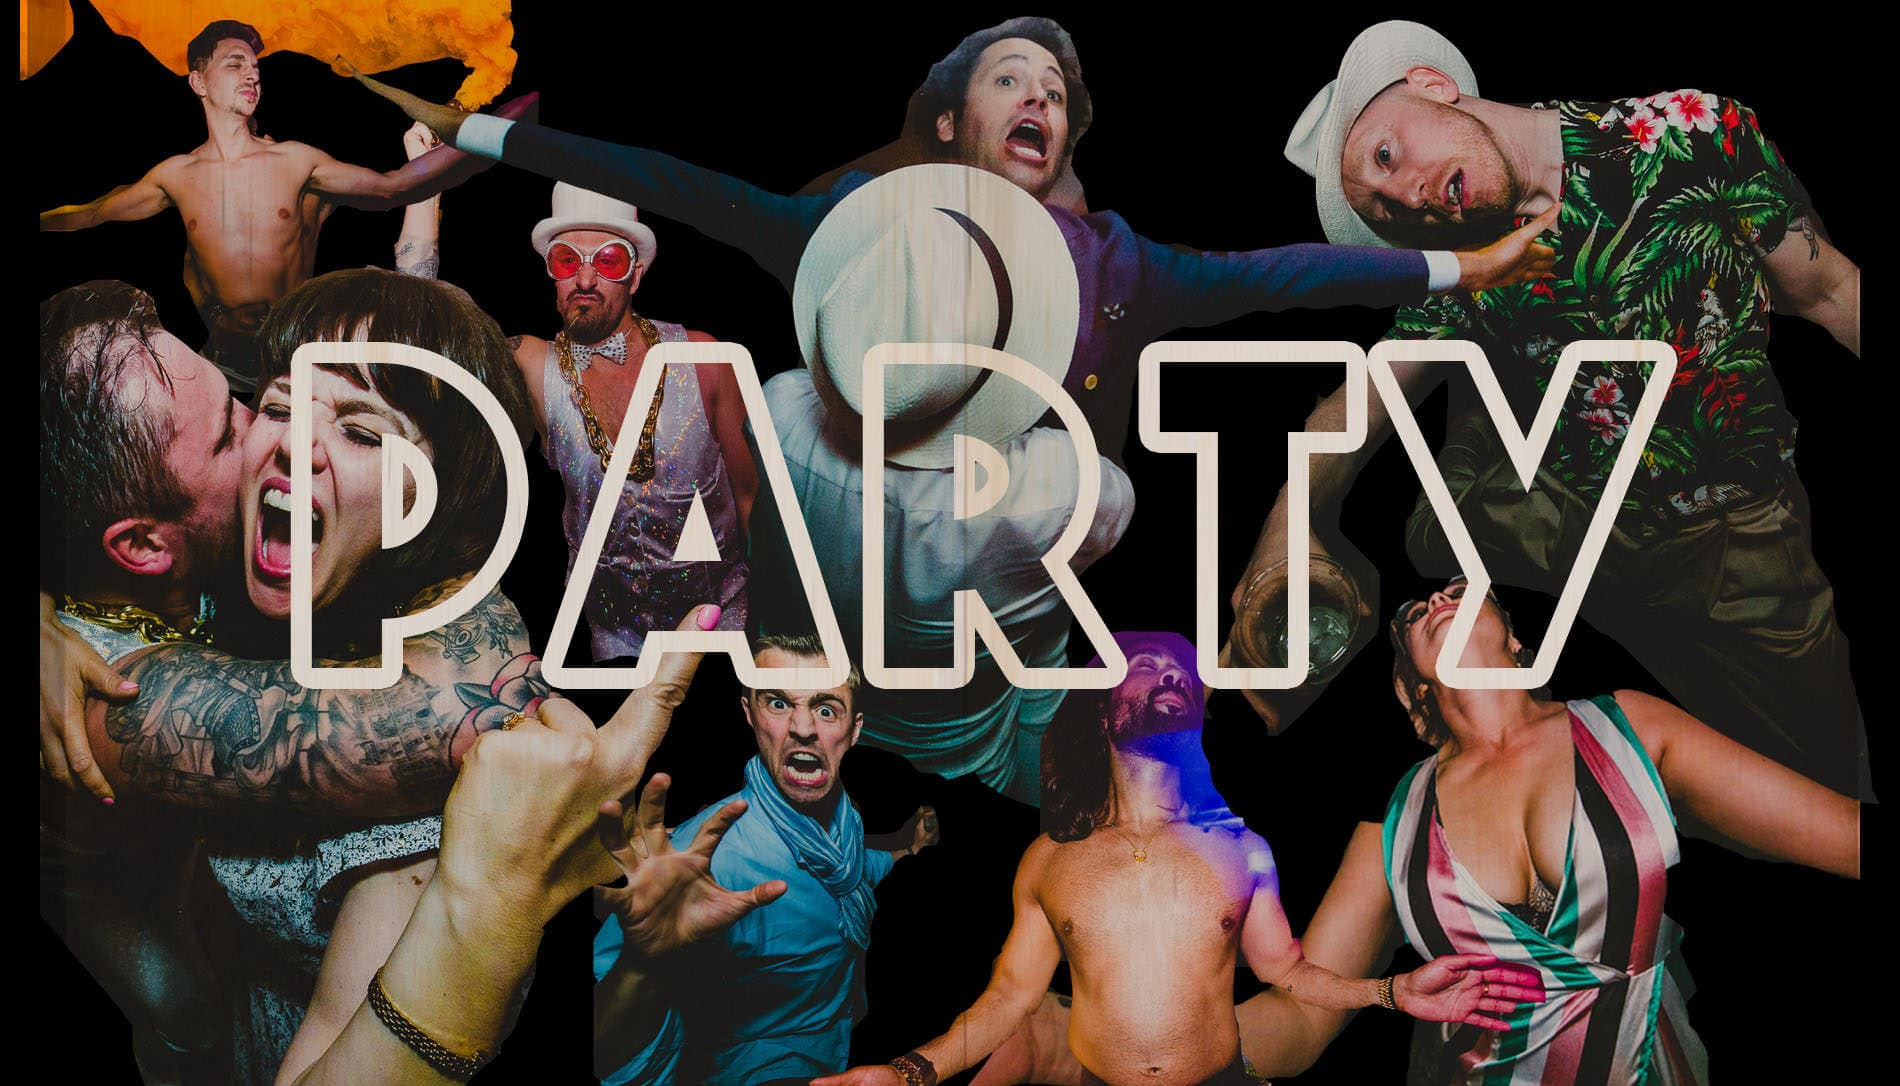 crazy party collage